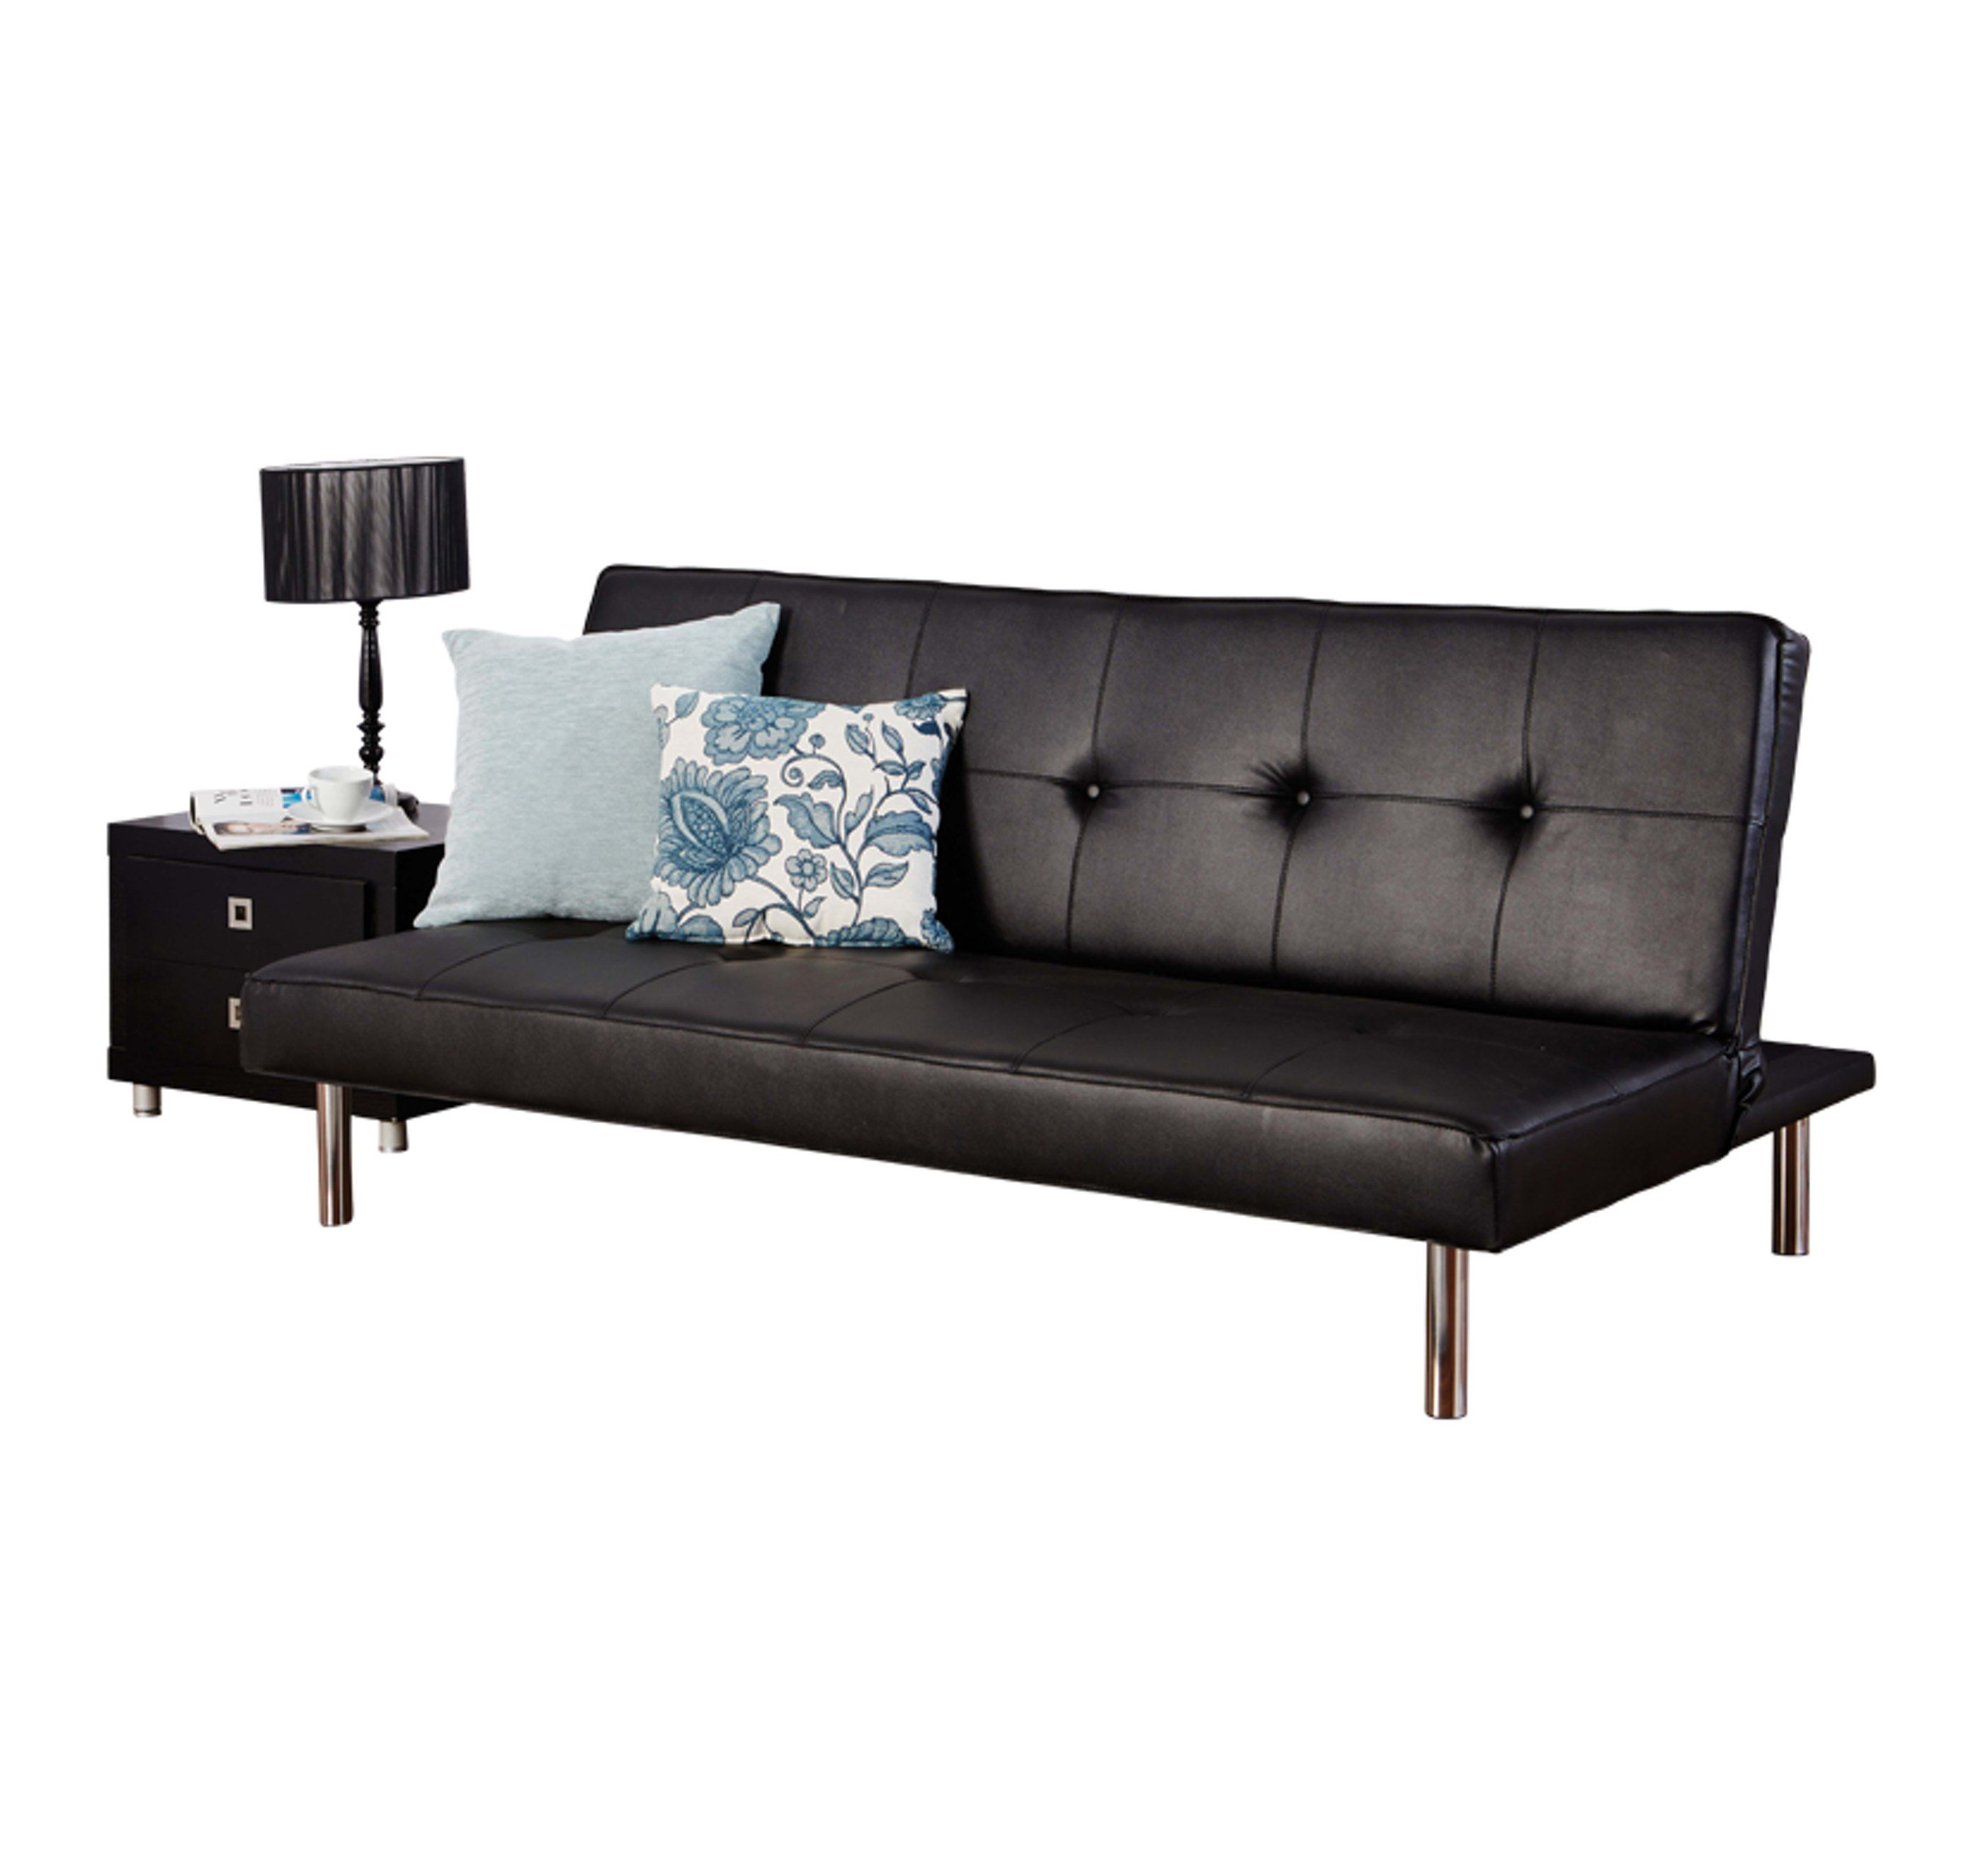 Hearst Faux Leather Three Seater Sofa Bed